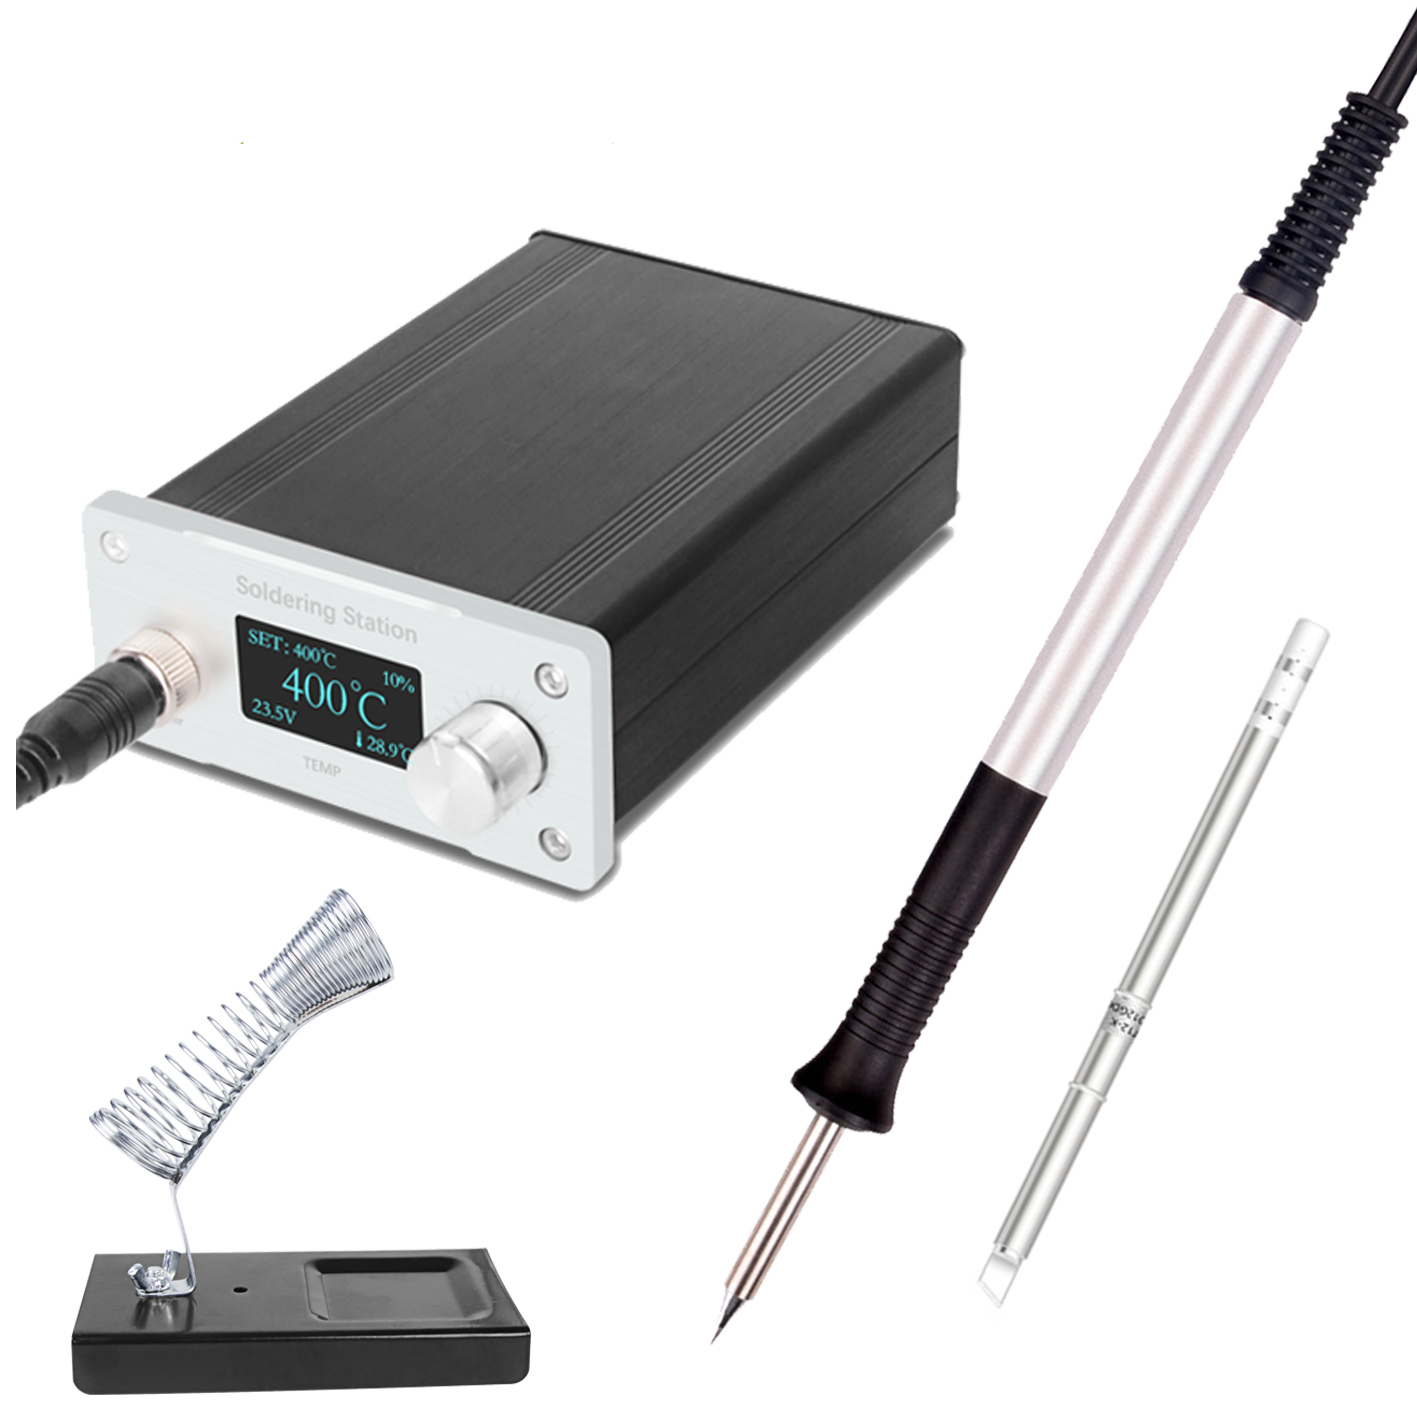 Adjustable Temperature Digital Soldering Station with LED Display Suitable for Phone Repairing